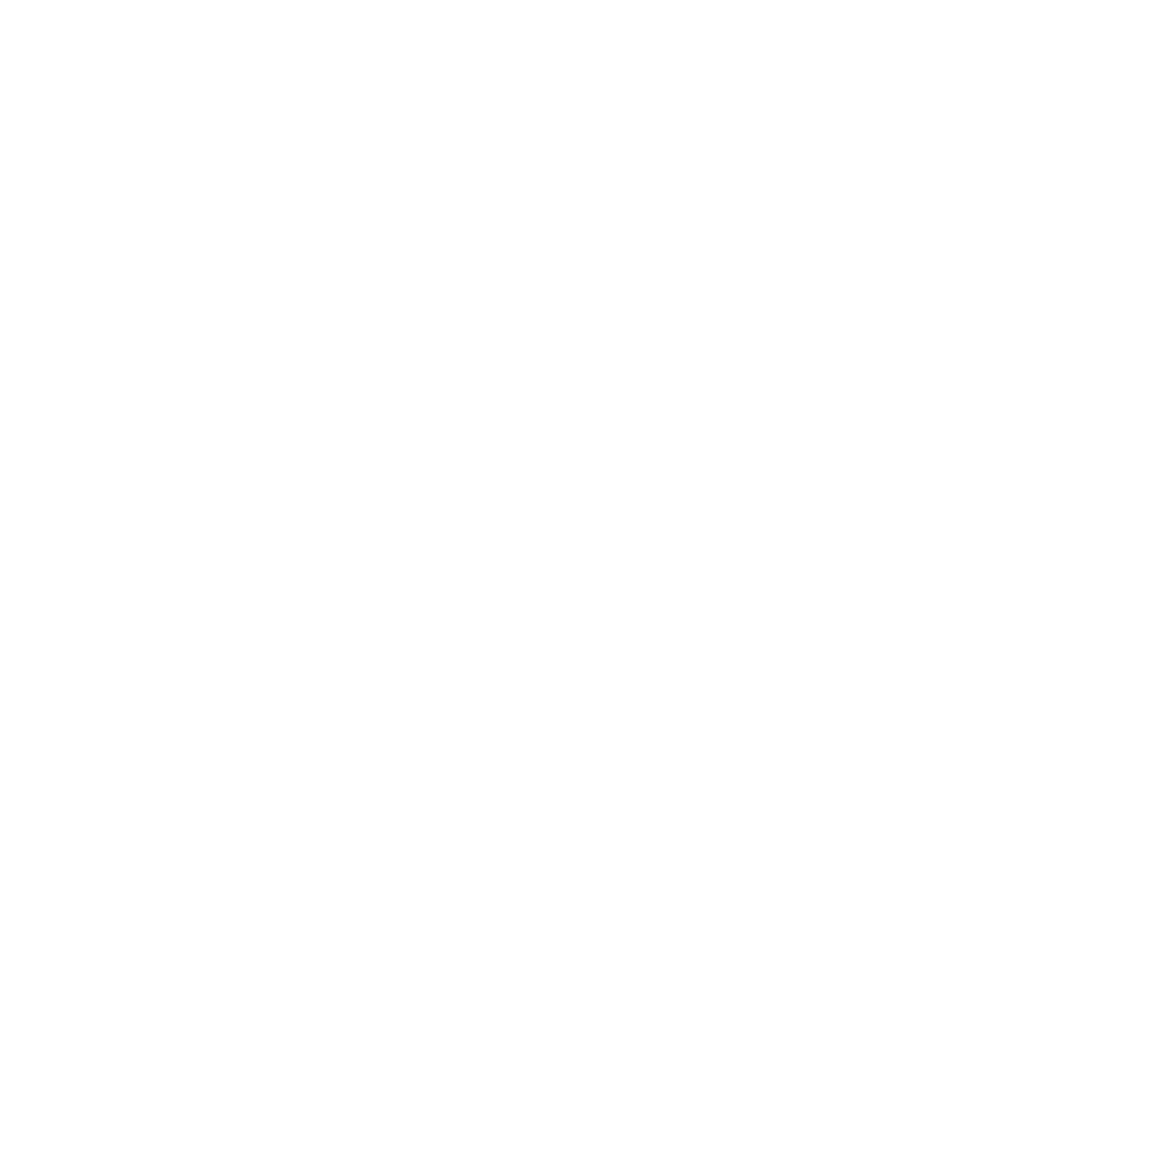 LIGHTHOUSE YOUTH PROJECTS